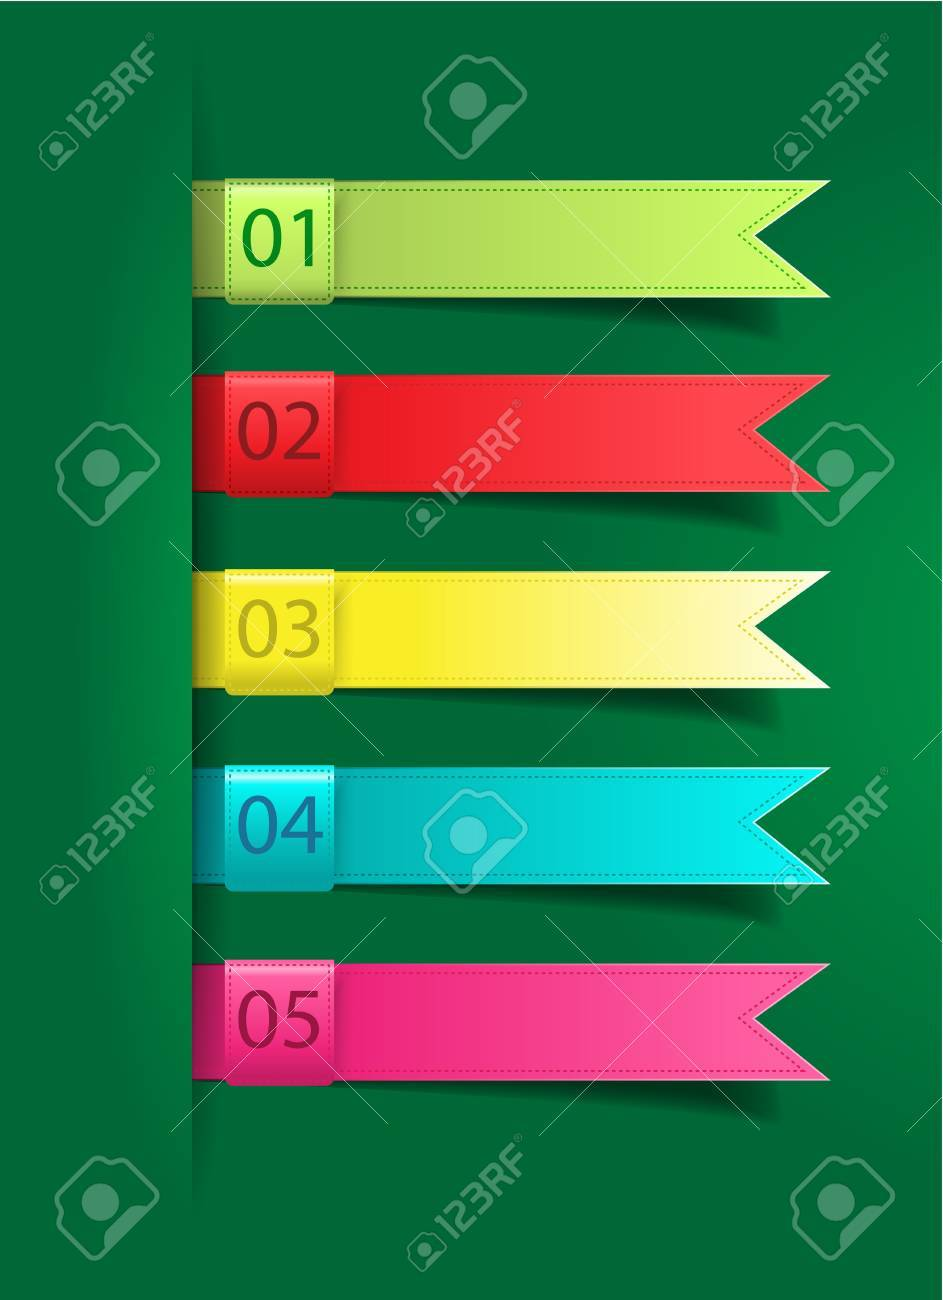 Colorful presentations with letters numbers, Vector illustration Stock Vector - 17451751